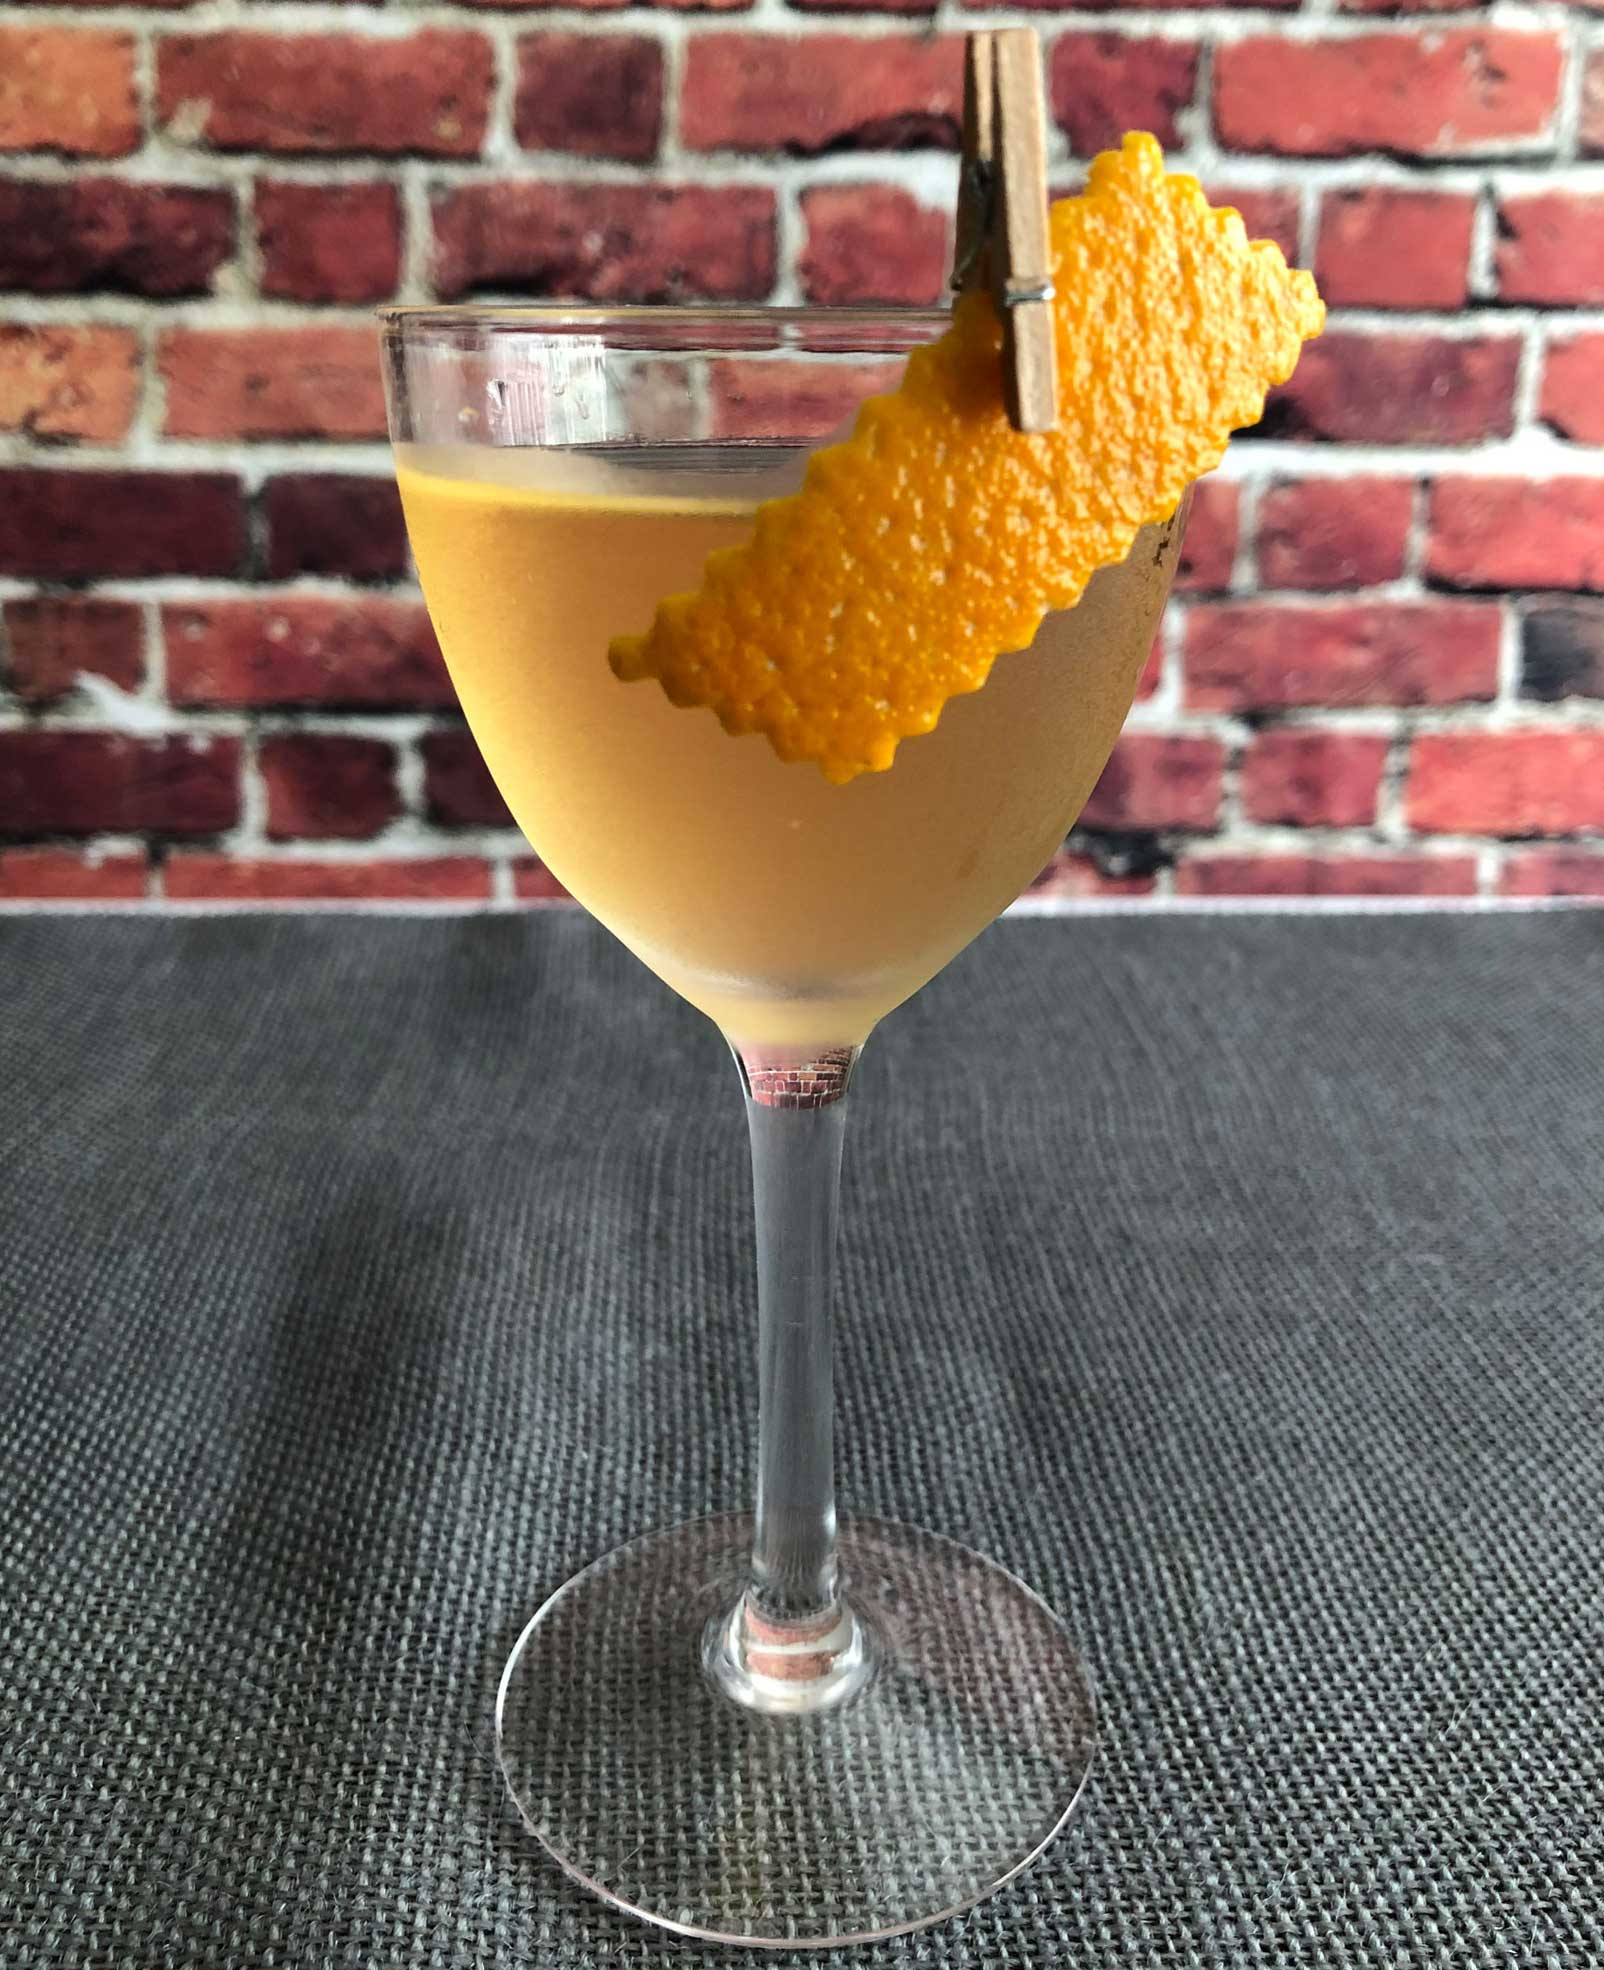 An example of the Rebirth of the Cool, the mixed drink (cocktail) featuring Mattei Cap Corse Blanc Quinquina, Purkhart Pear Williams Eau-de-Vie, and orange bitters; photo by Lee Edwards